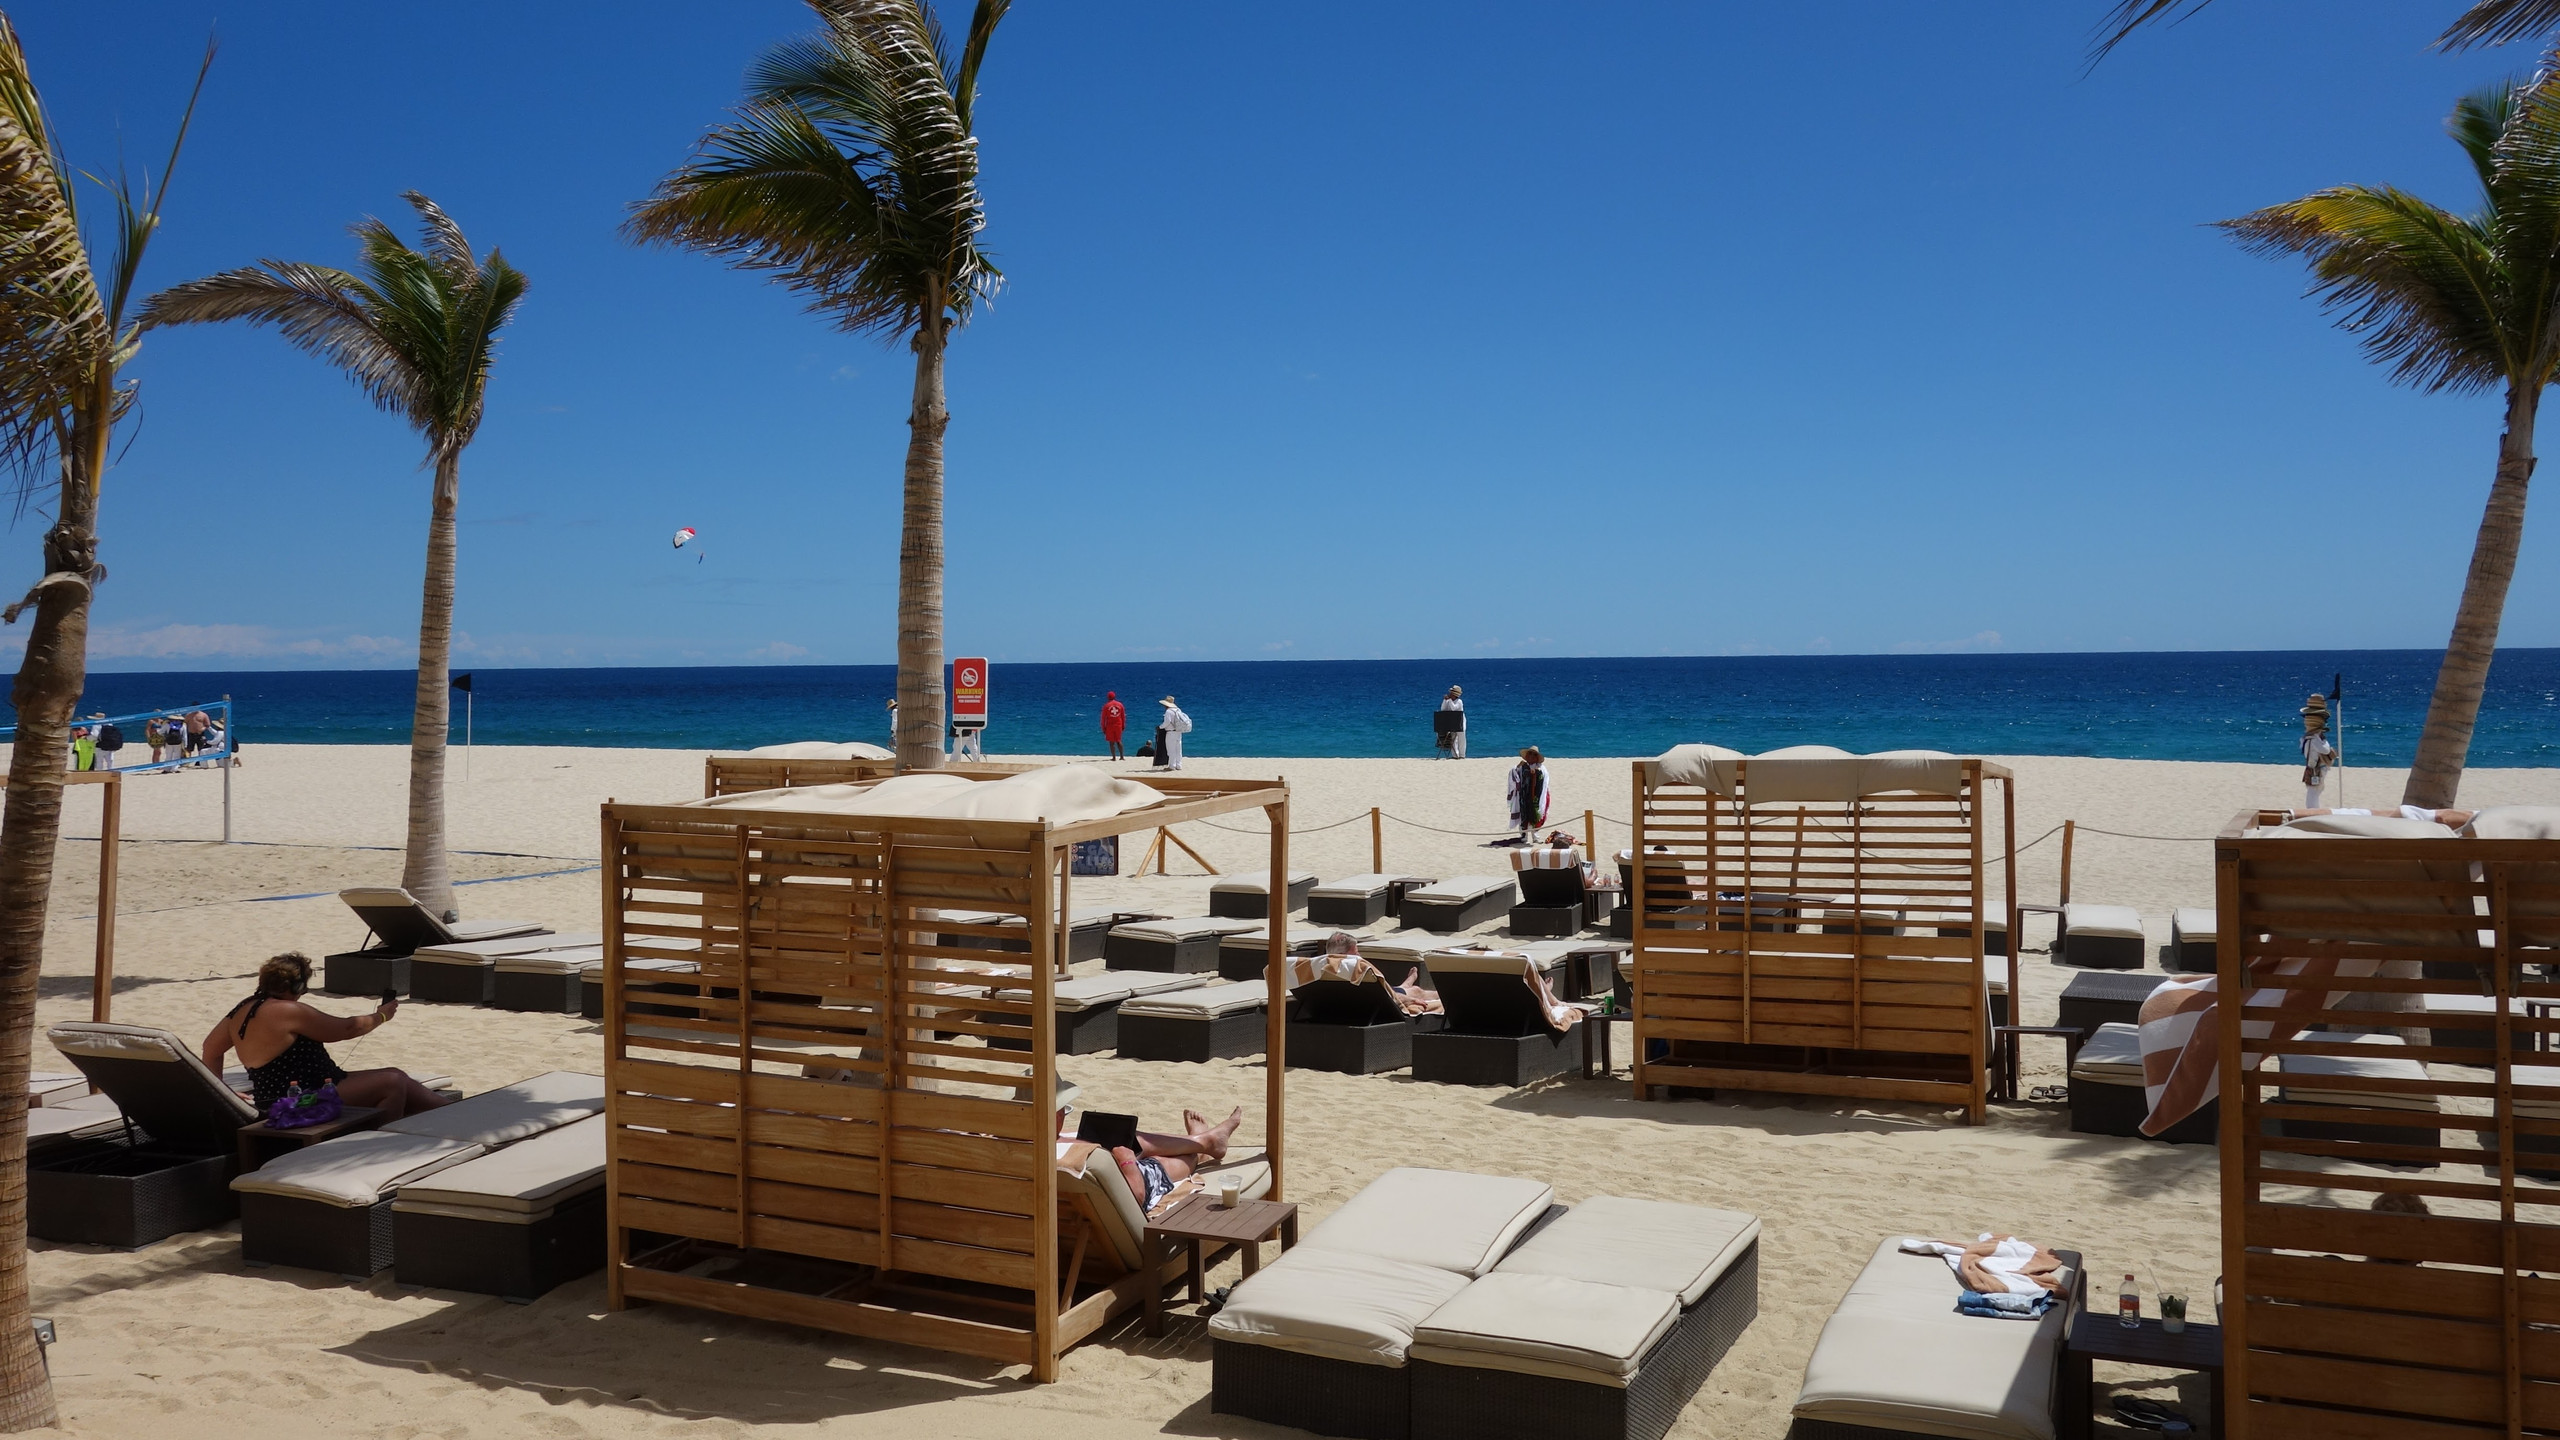 The beach with lounge chairs and Bali beds. Notice the rope to keep the beach vendors from harassing the resort guests?